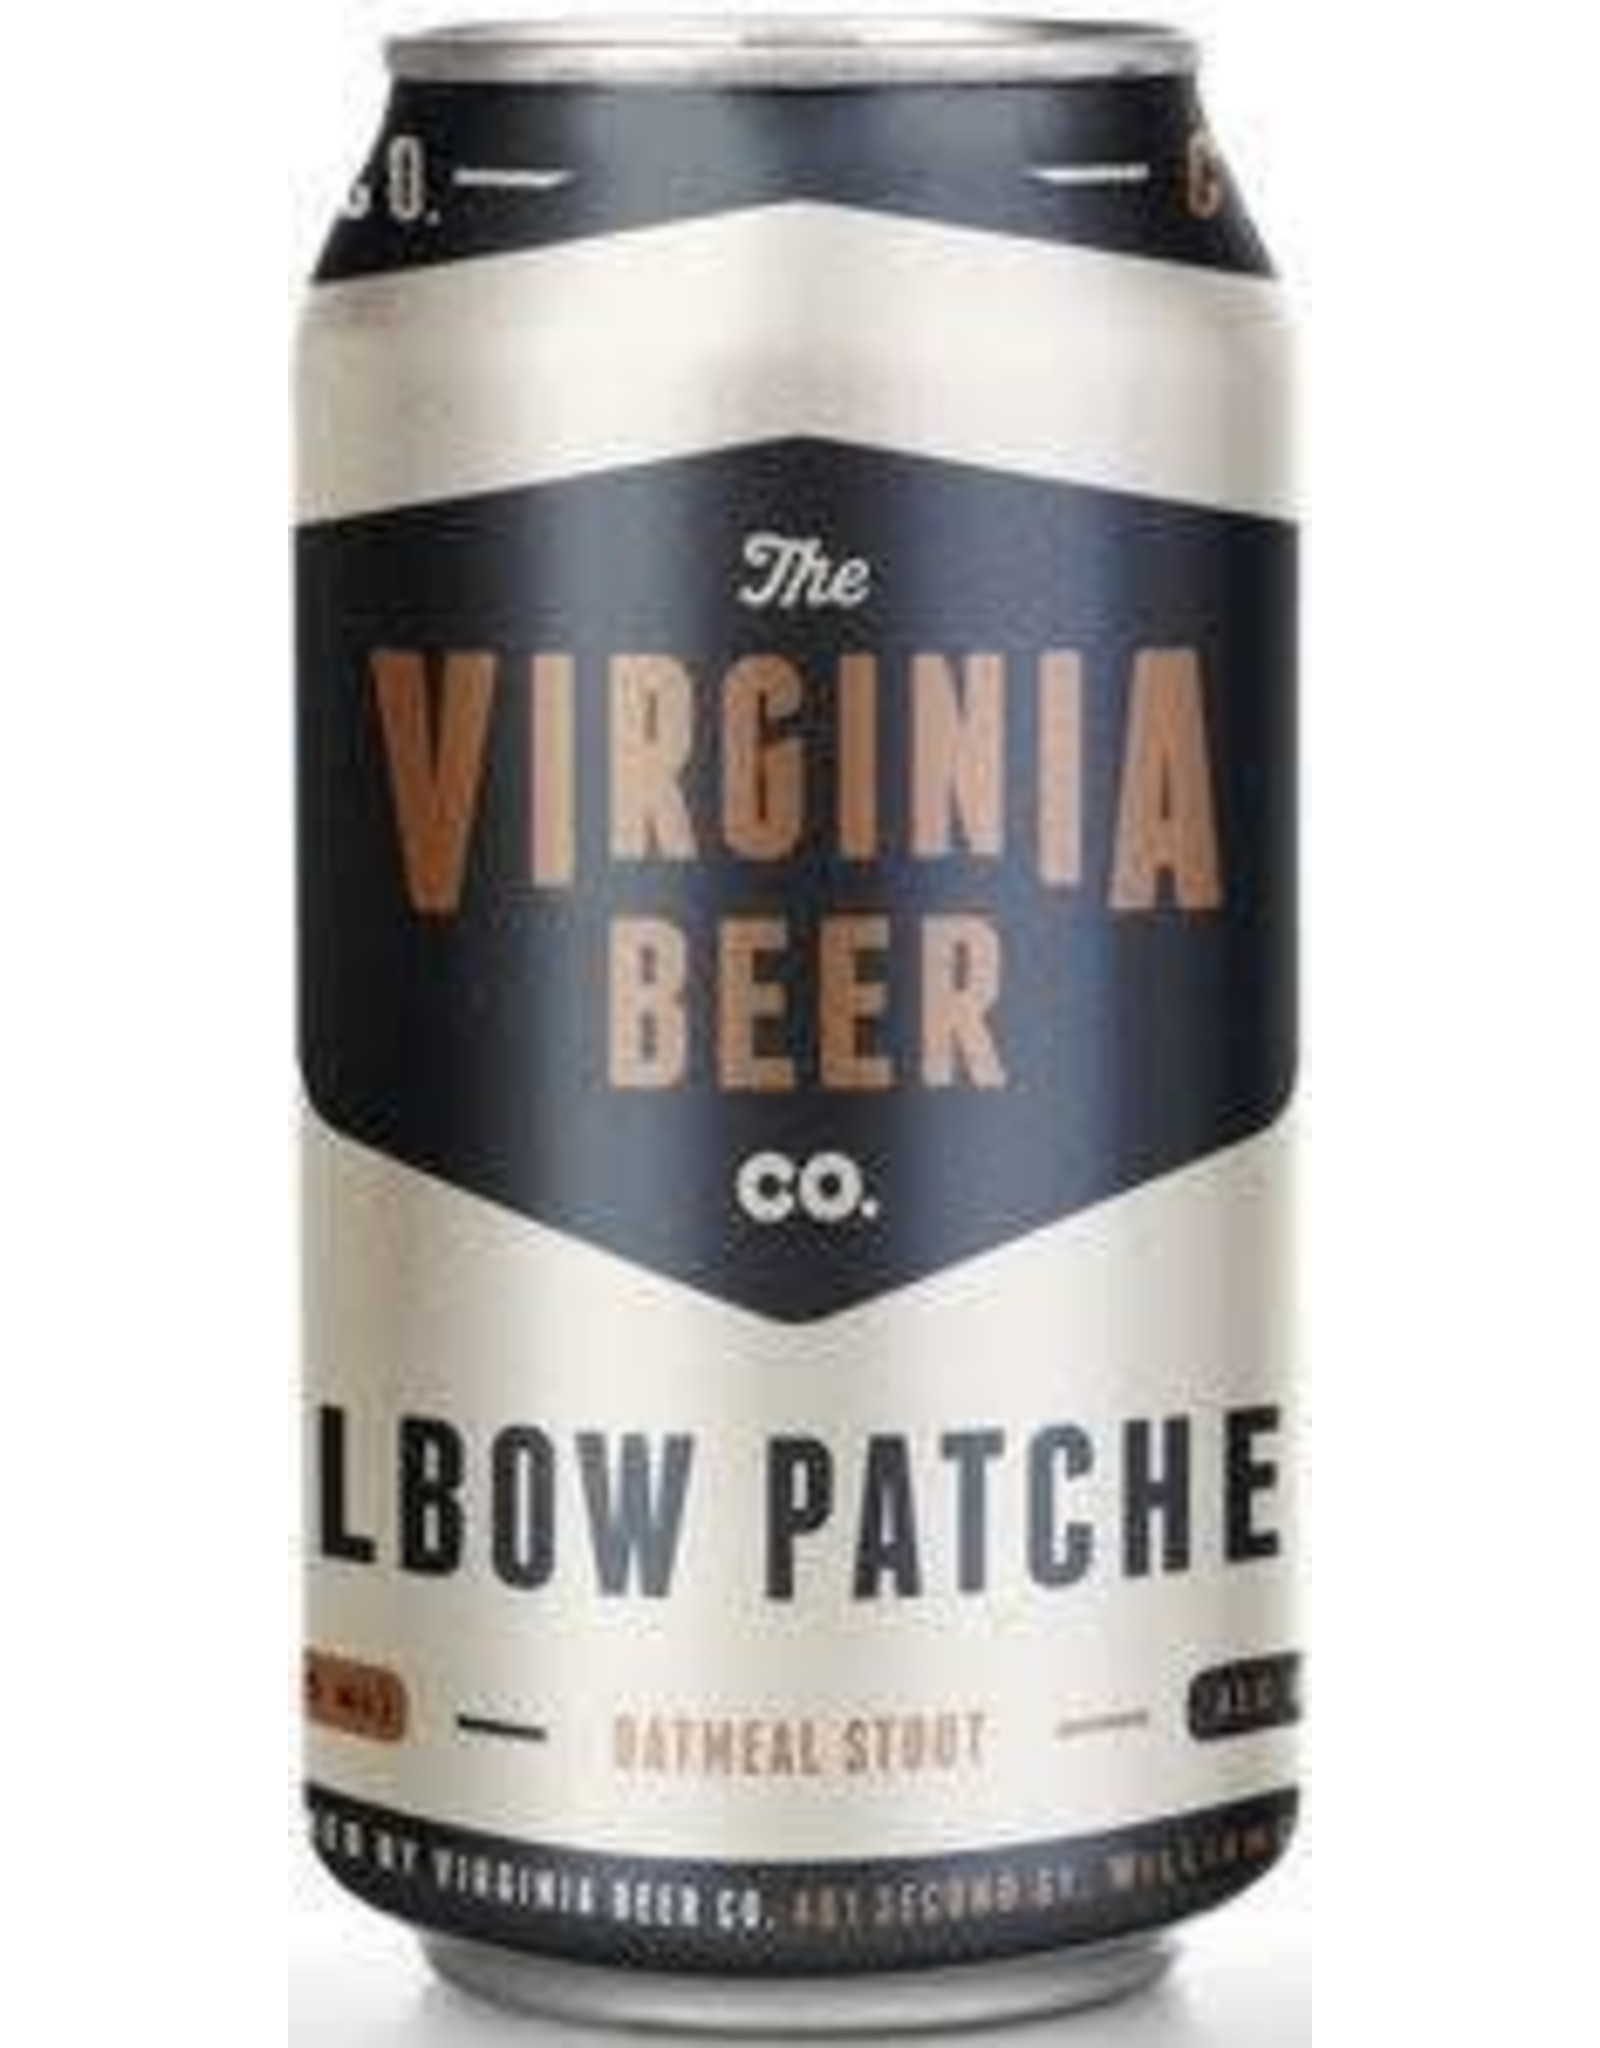 Virginia Beer Company VBC Elbow Patches 6pk can